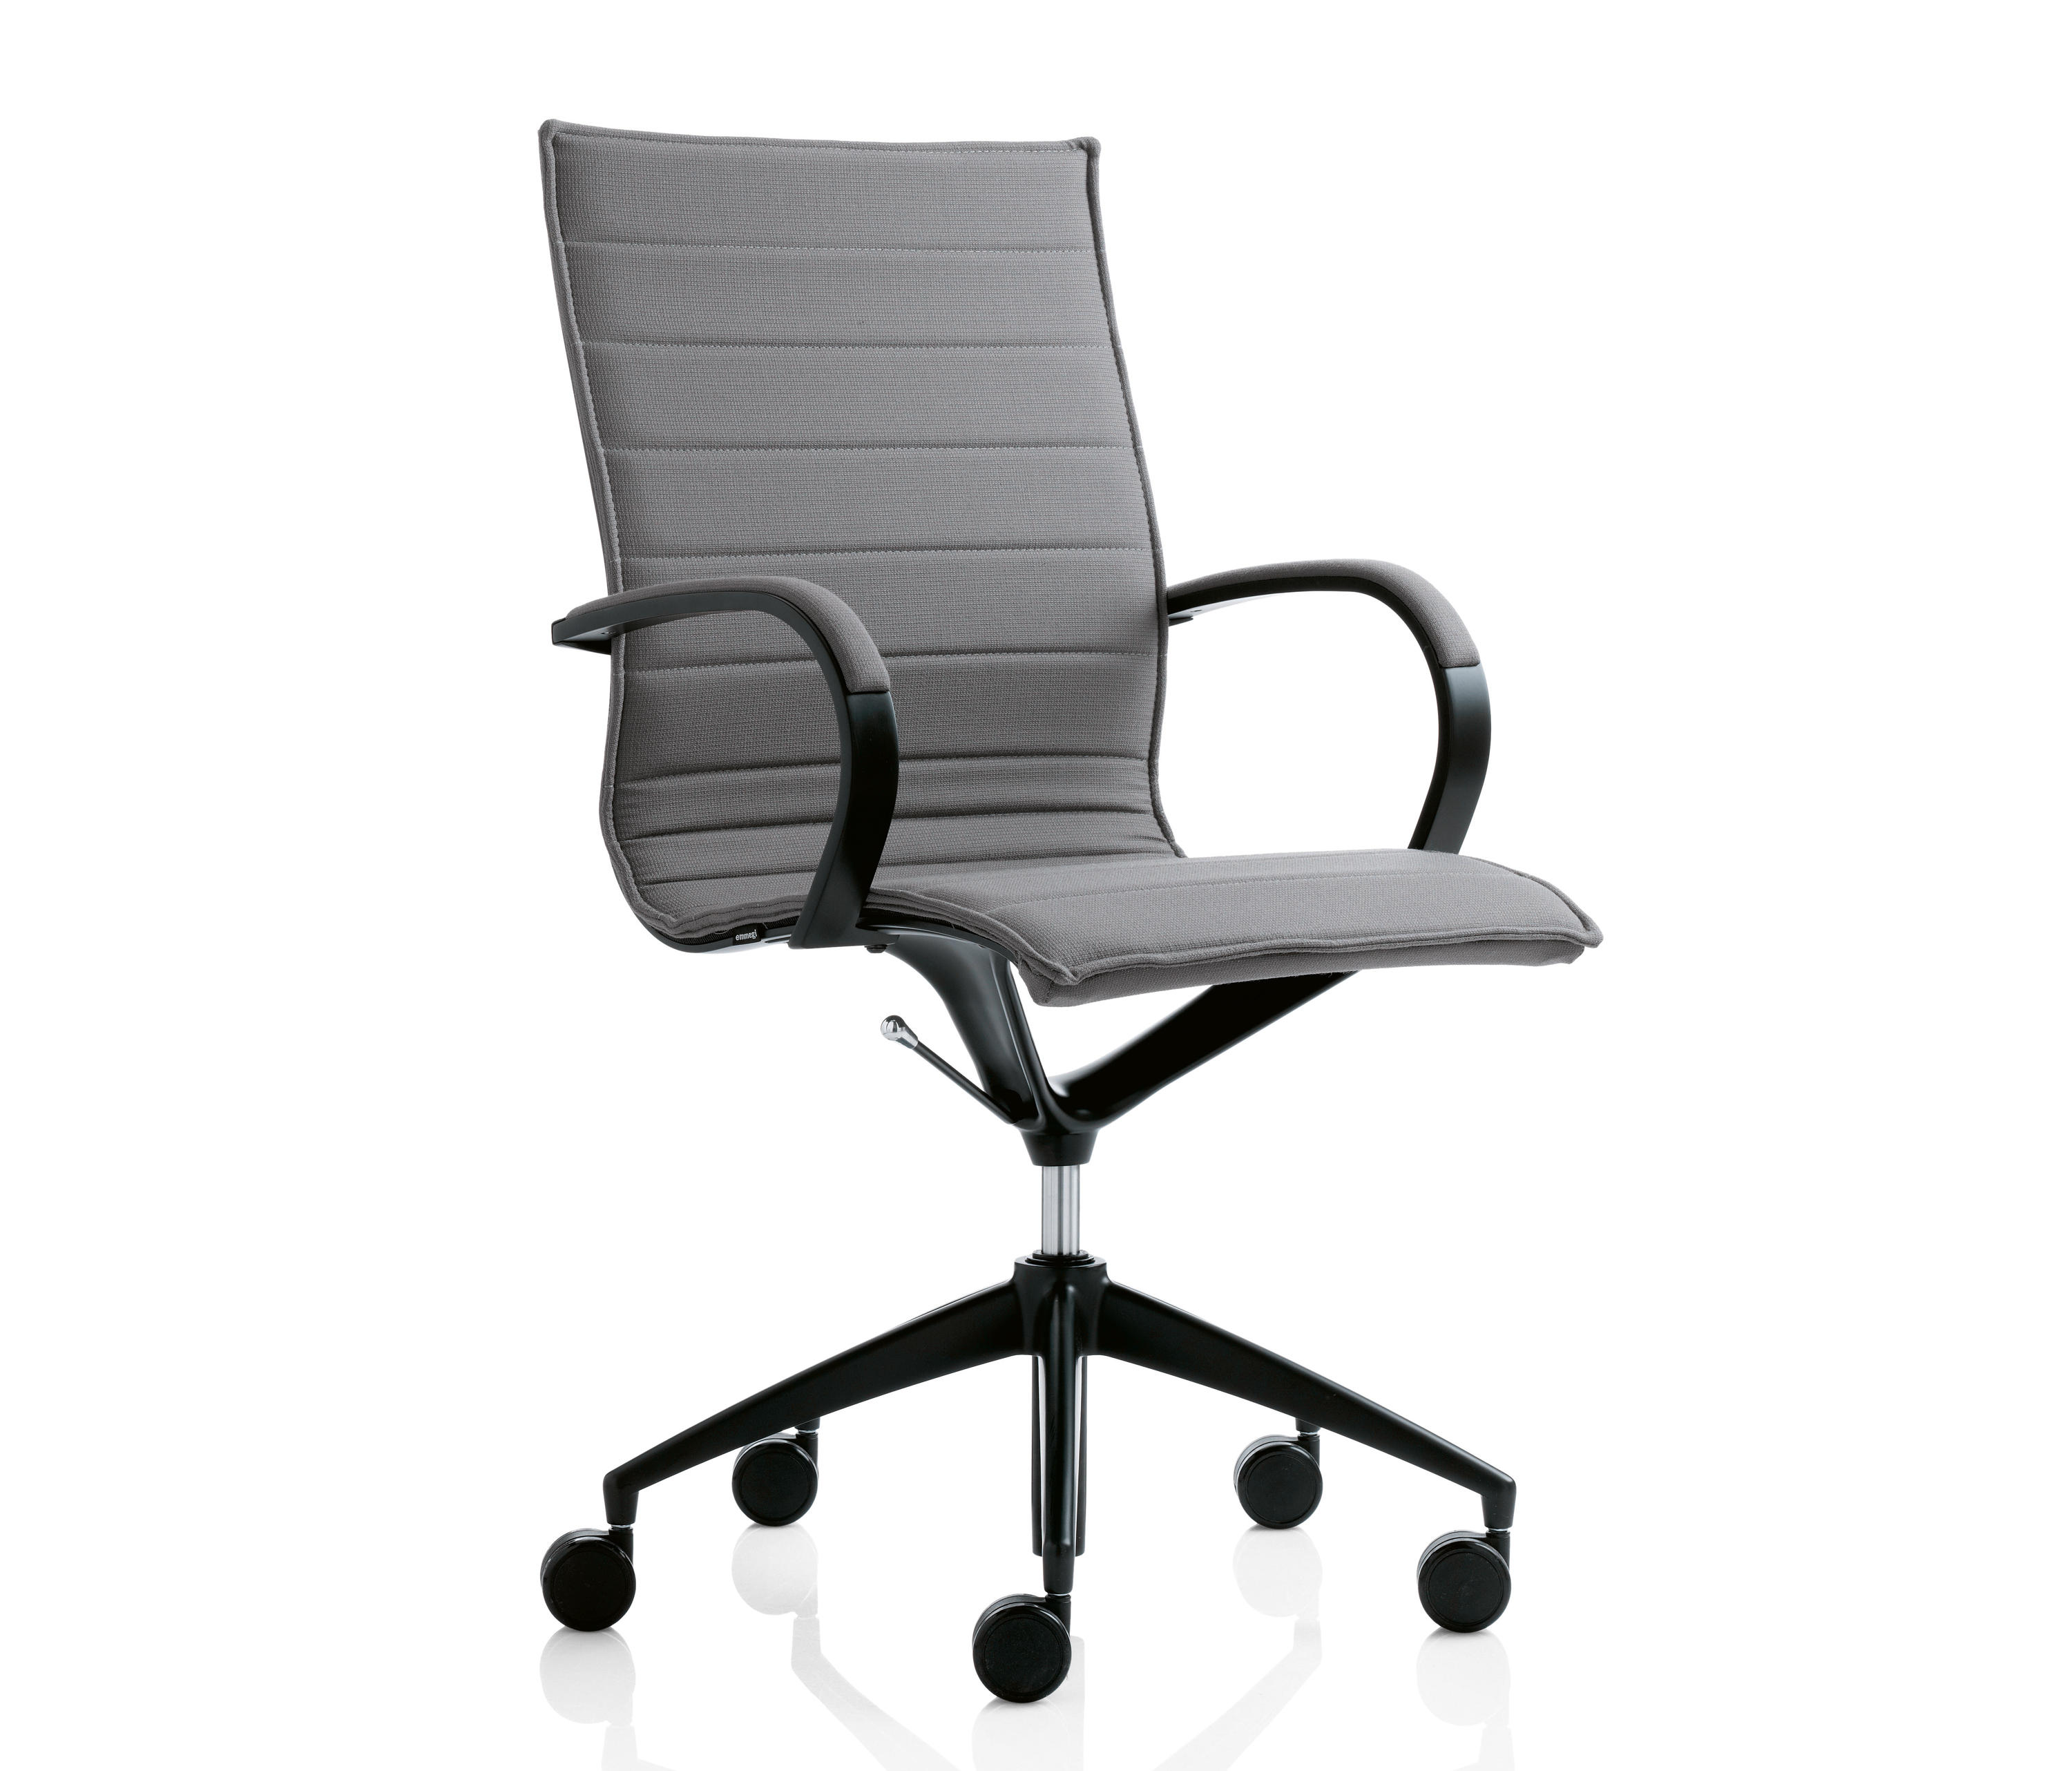 swivel chair em portugues the best massage 202 basic chairs from emmegi architonic